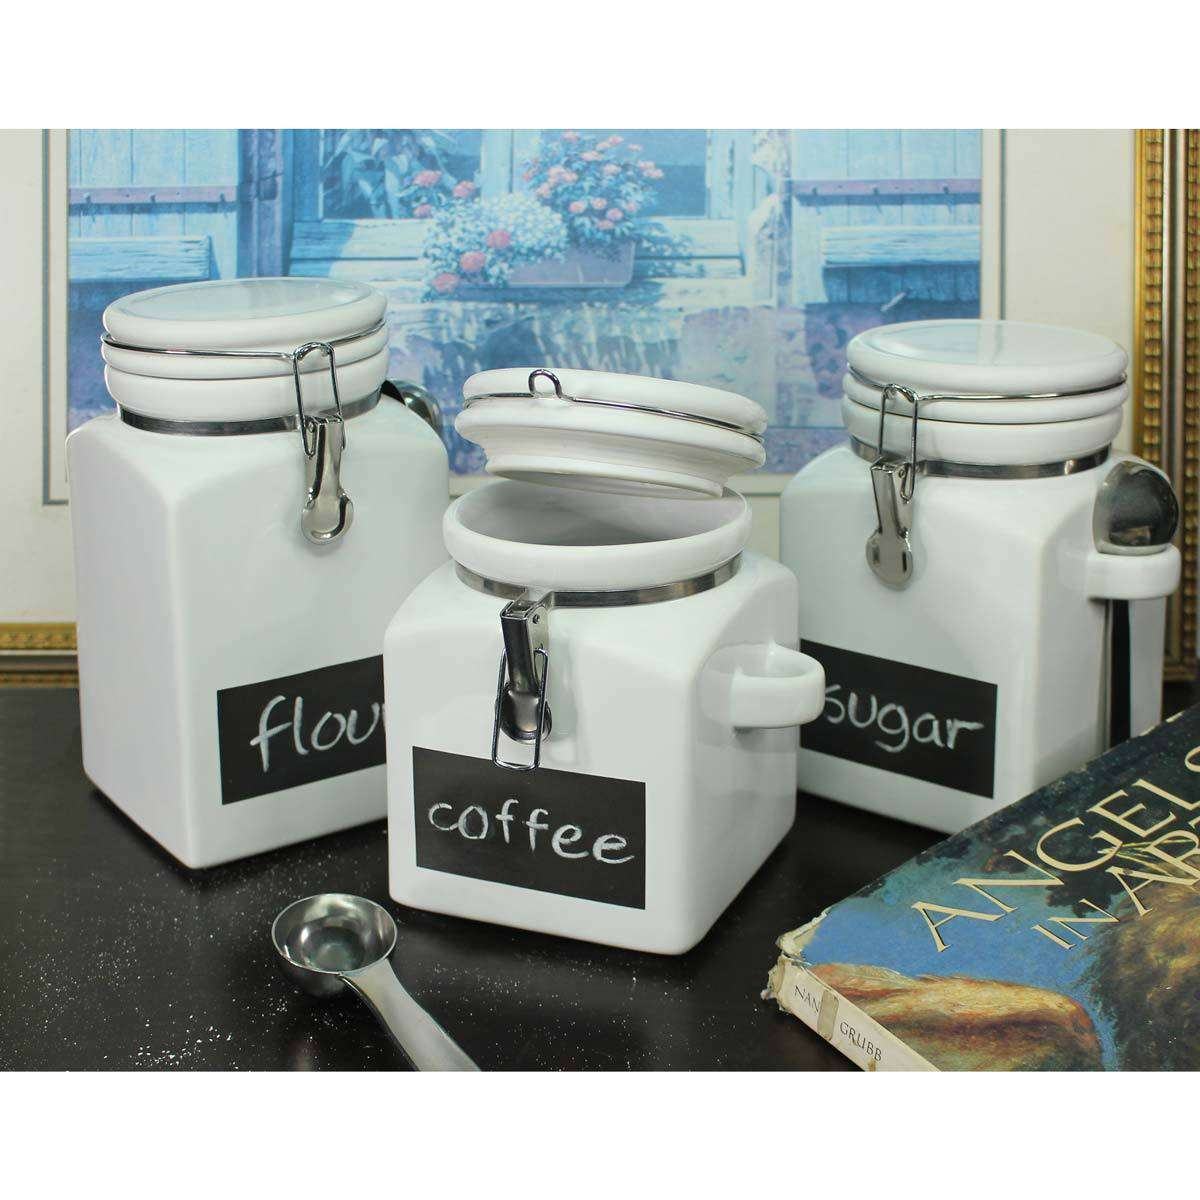 Stoneware Canisters with Chalkboard Fronts, 3 PackStoneware Canisters with Chalkboard Fronts, 3 Pack